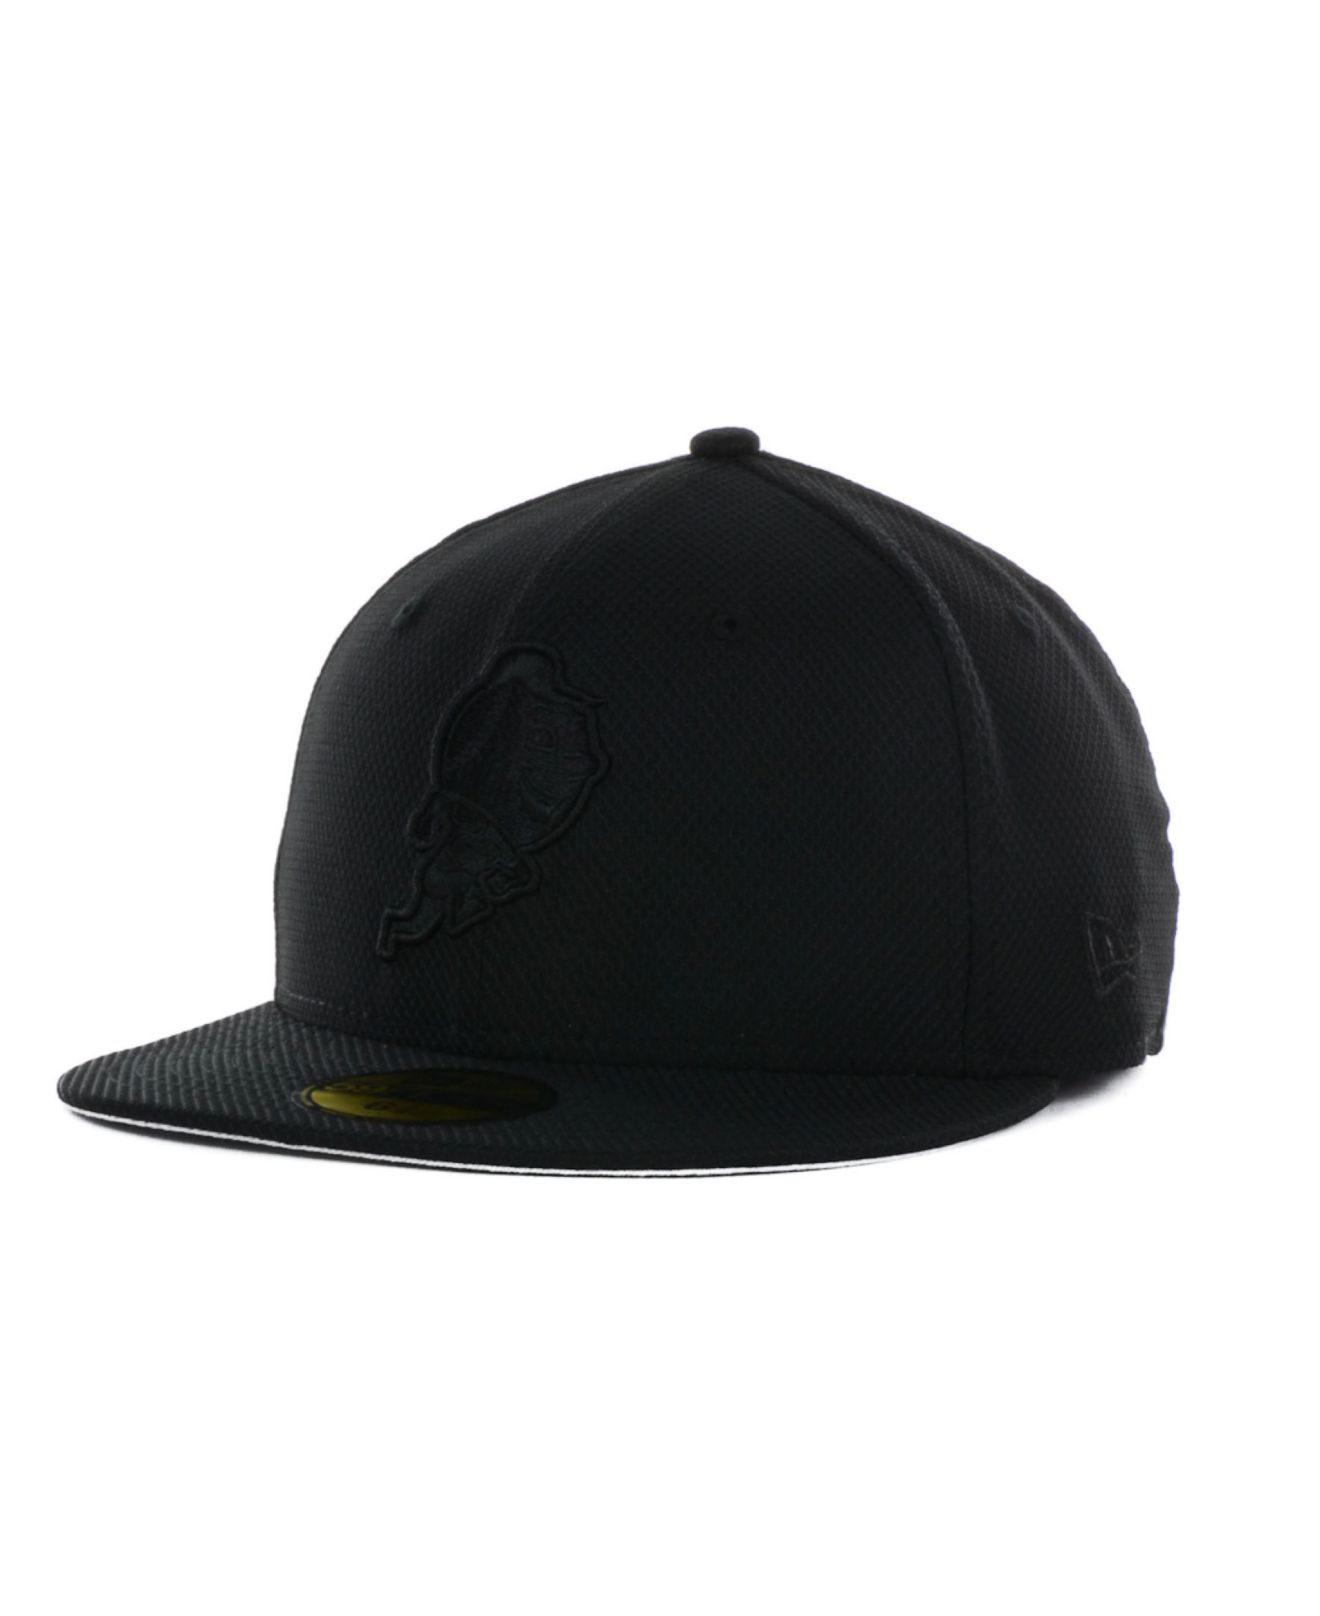 659535b36cf ... canada chic new era era black white york mets mlb diamond hookturn 59fifty  cap new glittering